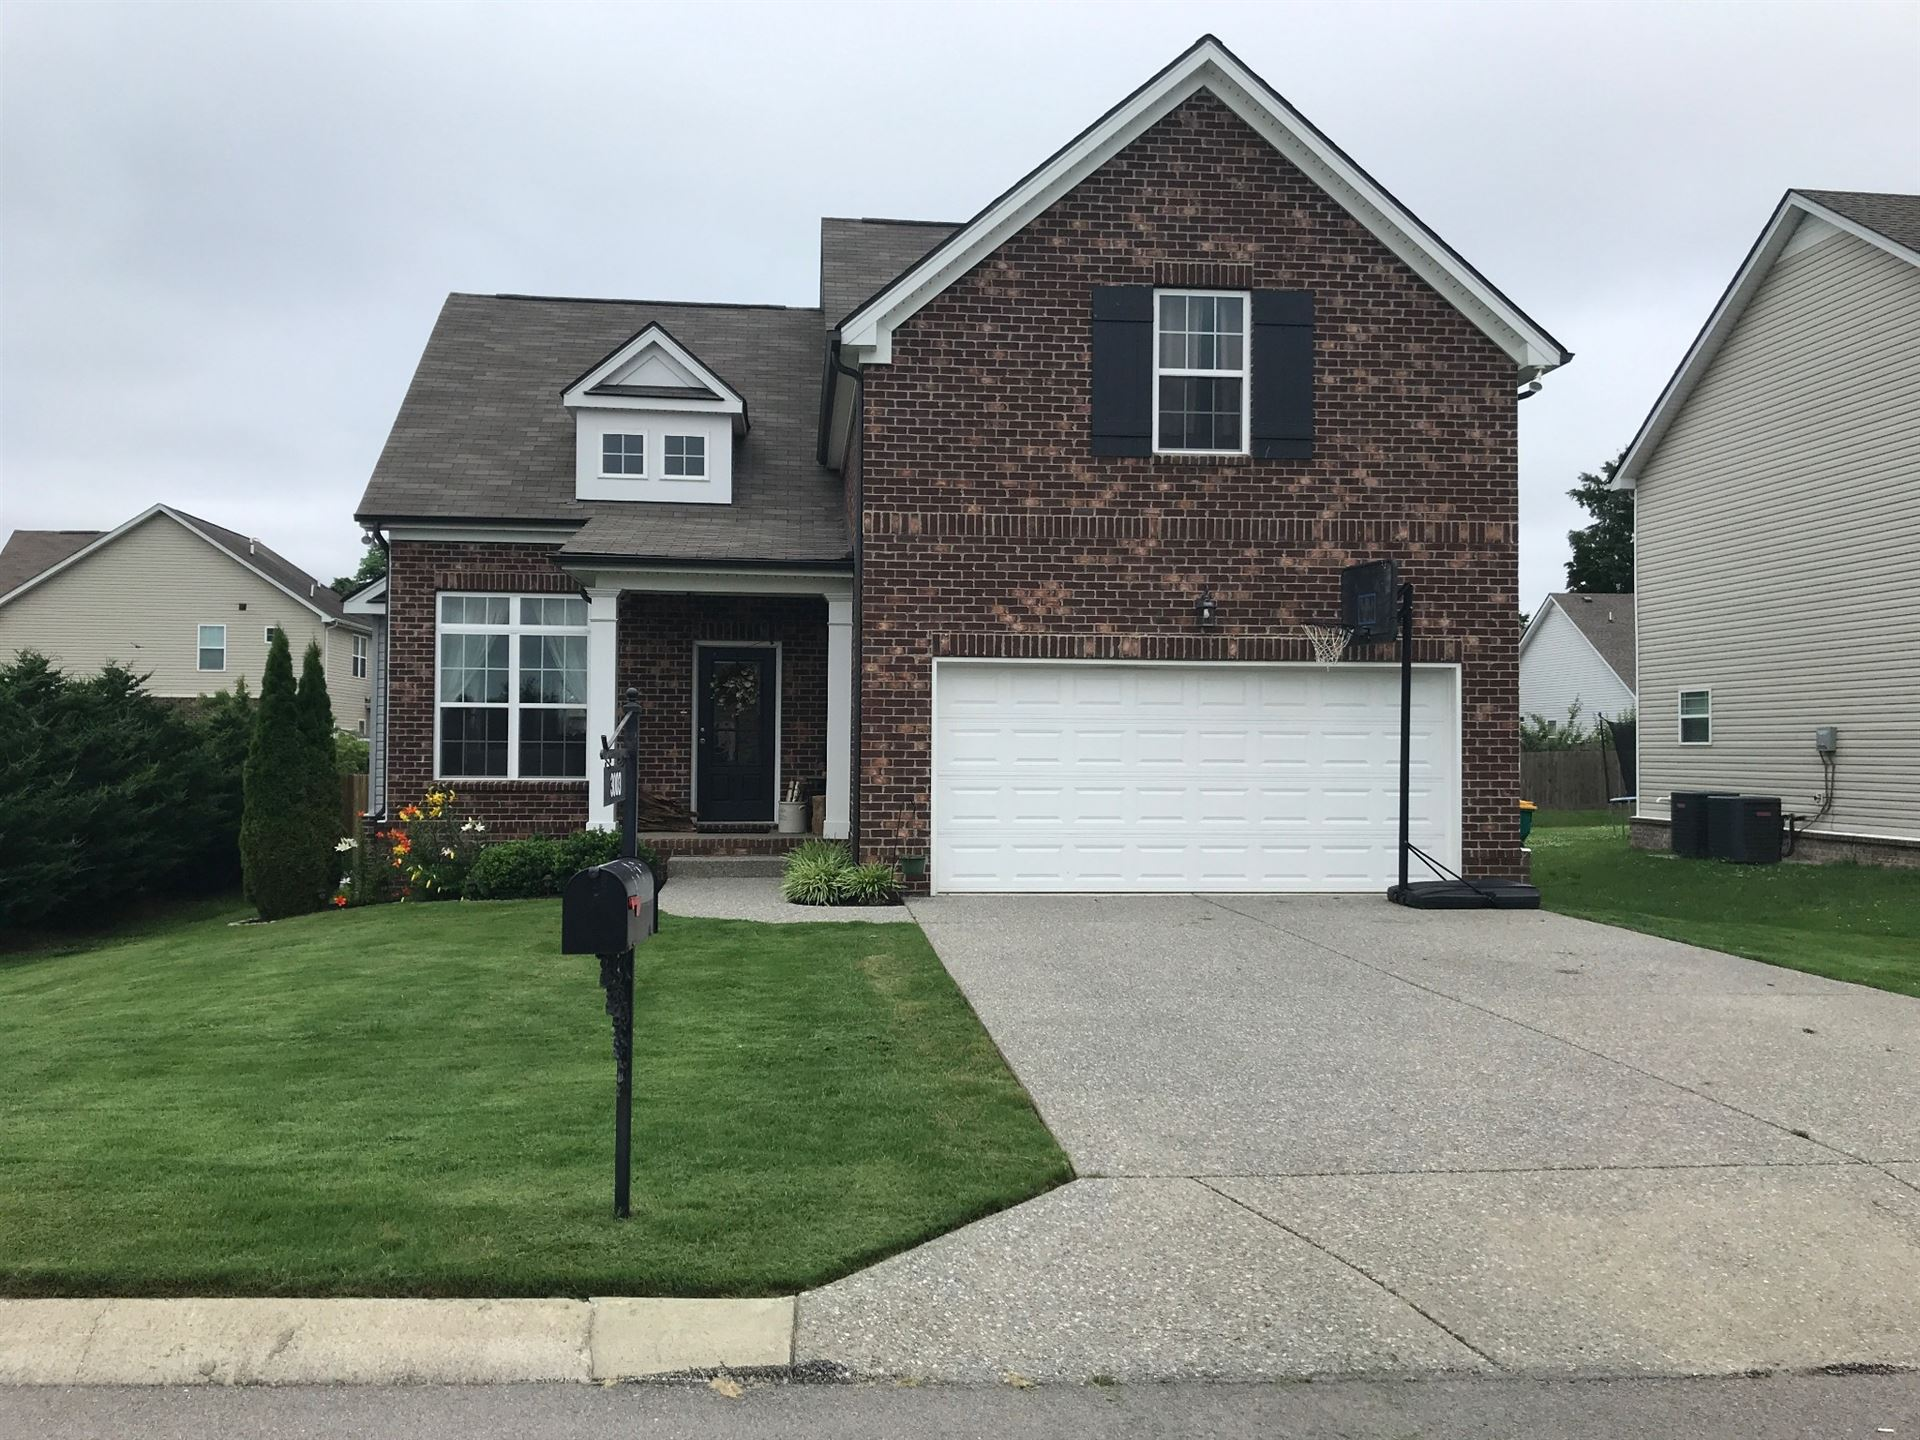 Photo of 3003 Wesley Rd, Spring Hill, TN 37174 (MLS # 2261879)